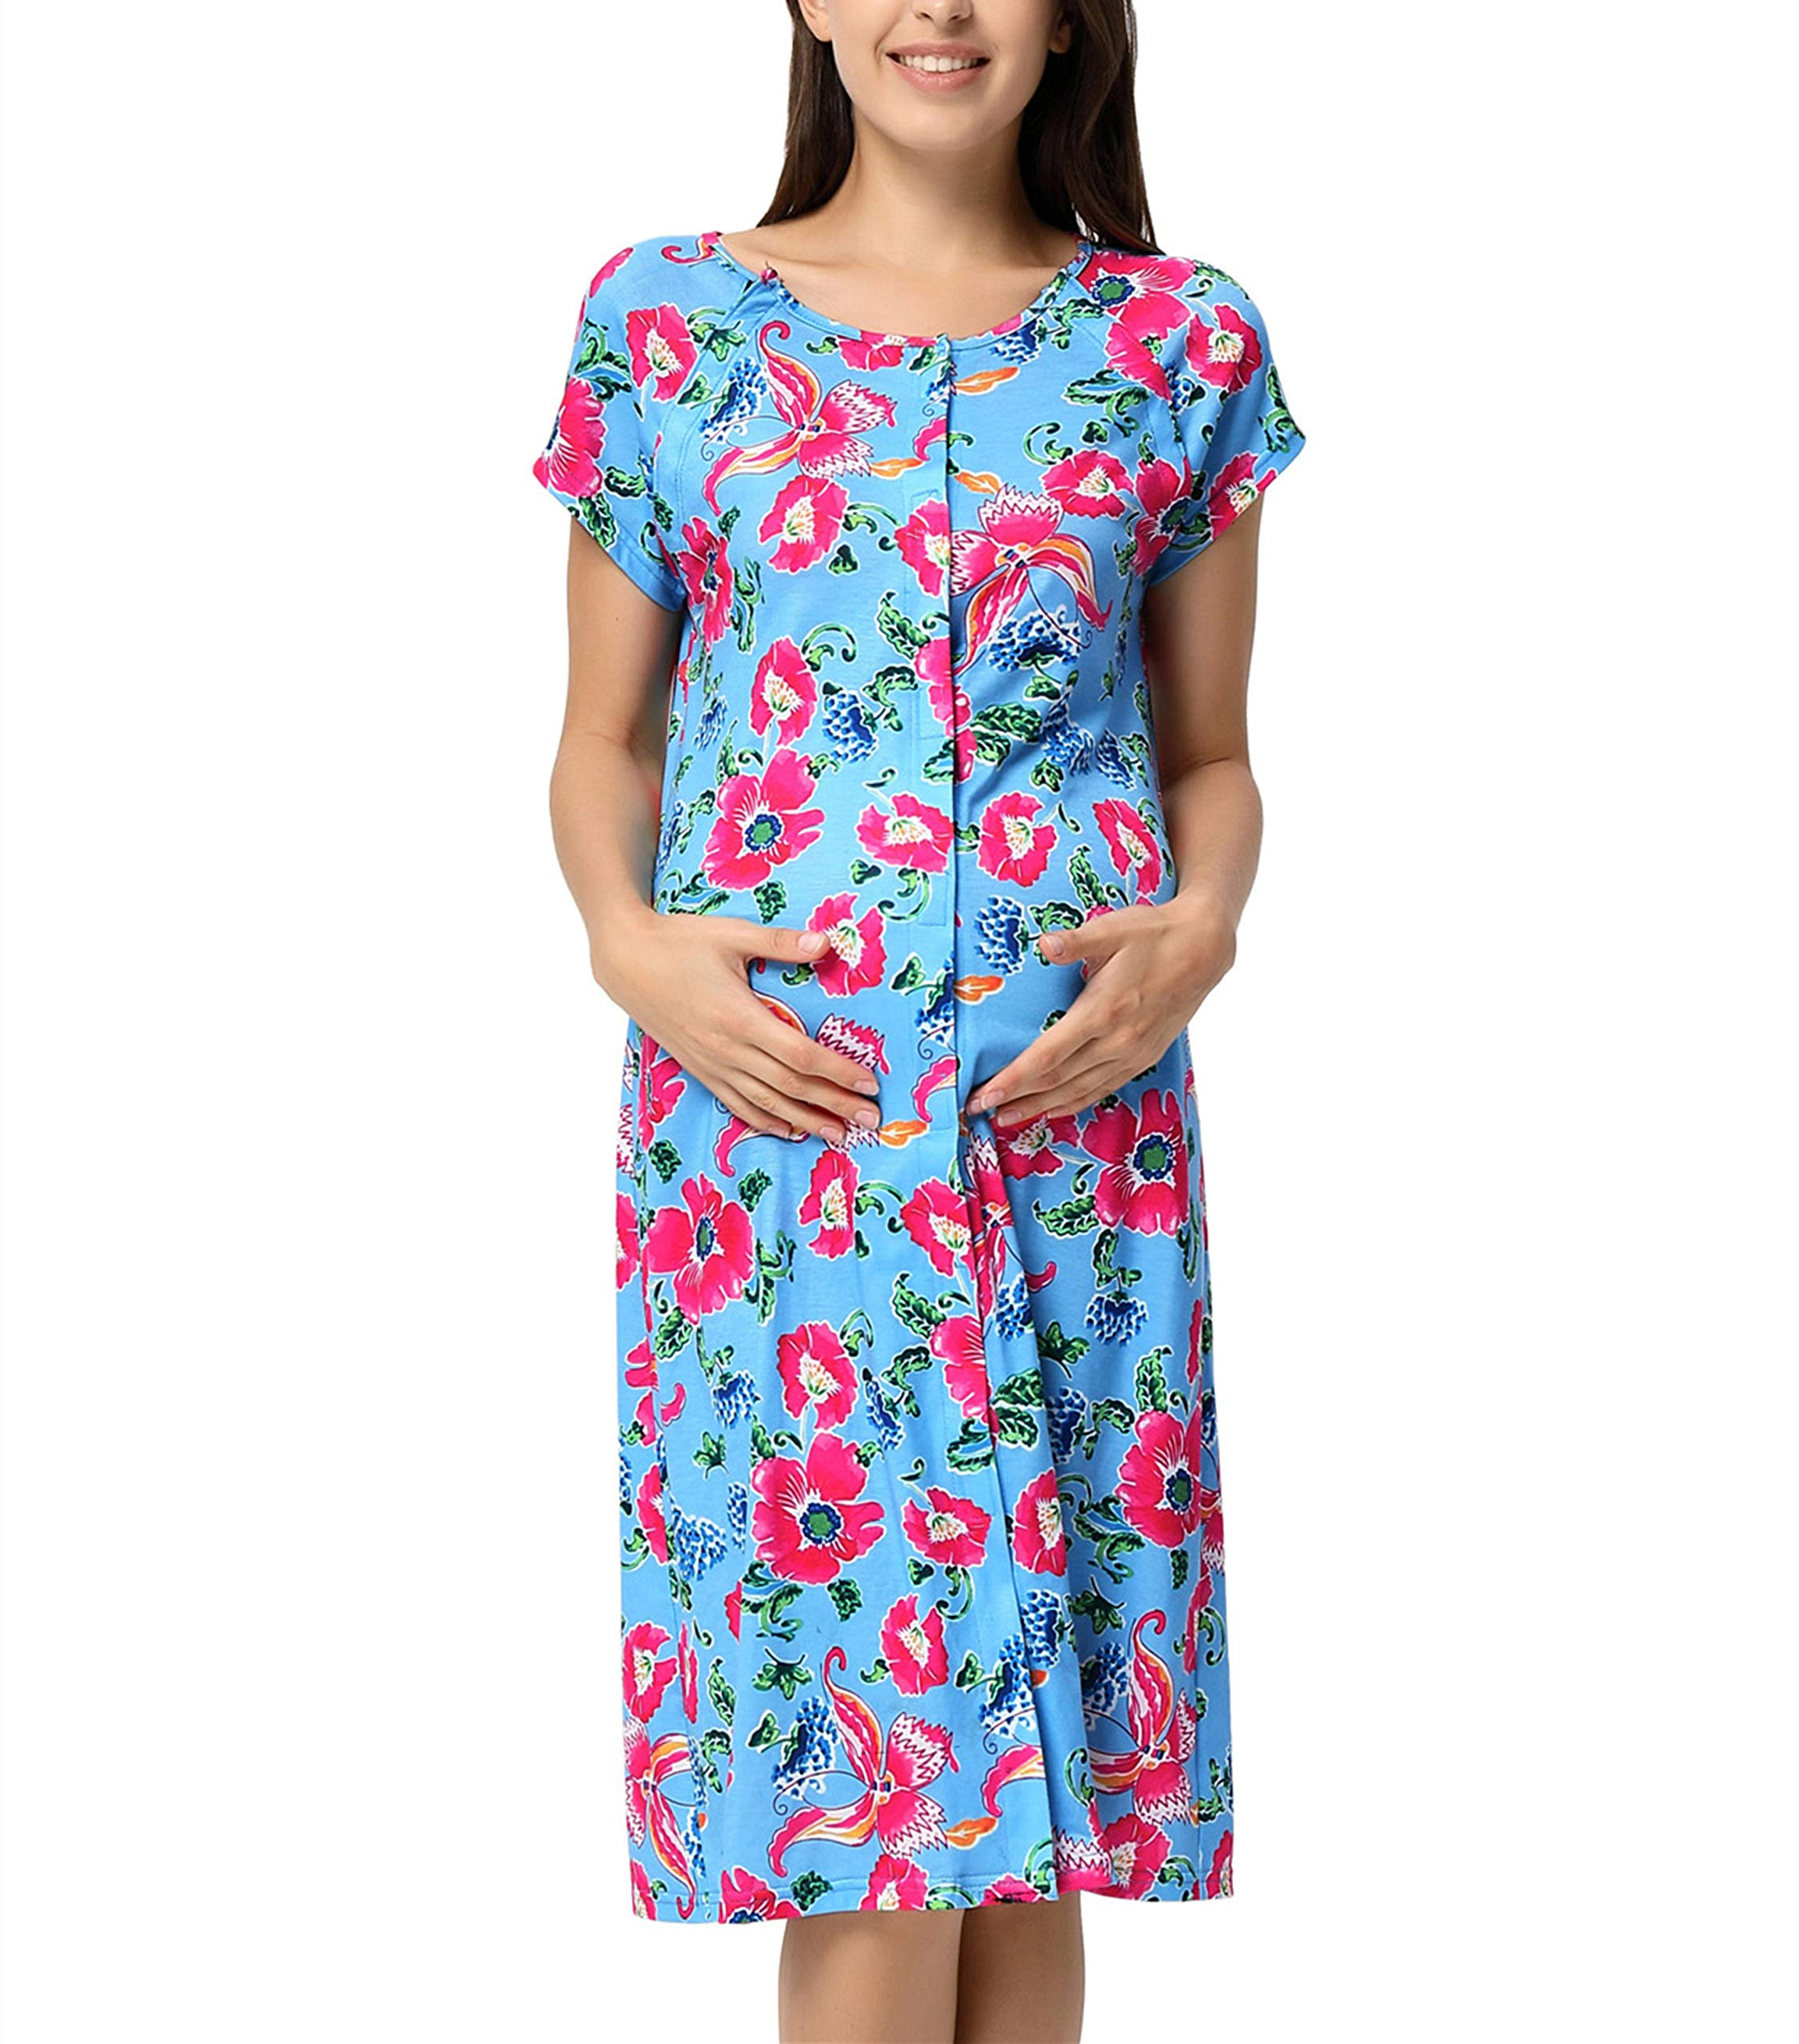 GRACE KARIN Labor and Delivery Maternity Hospital Gown Maternity Nursing Dress 2XL